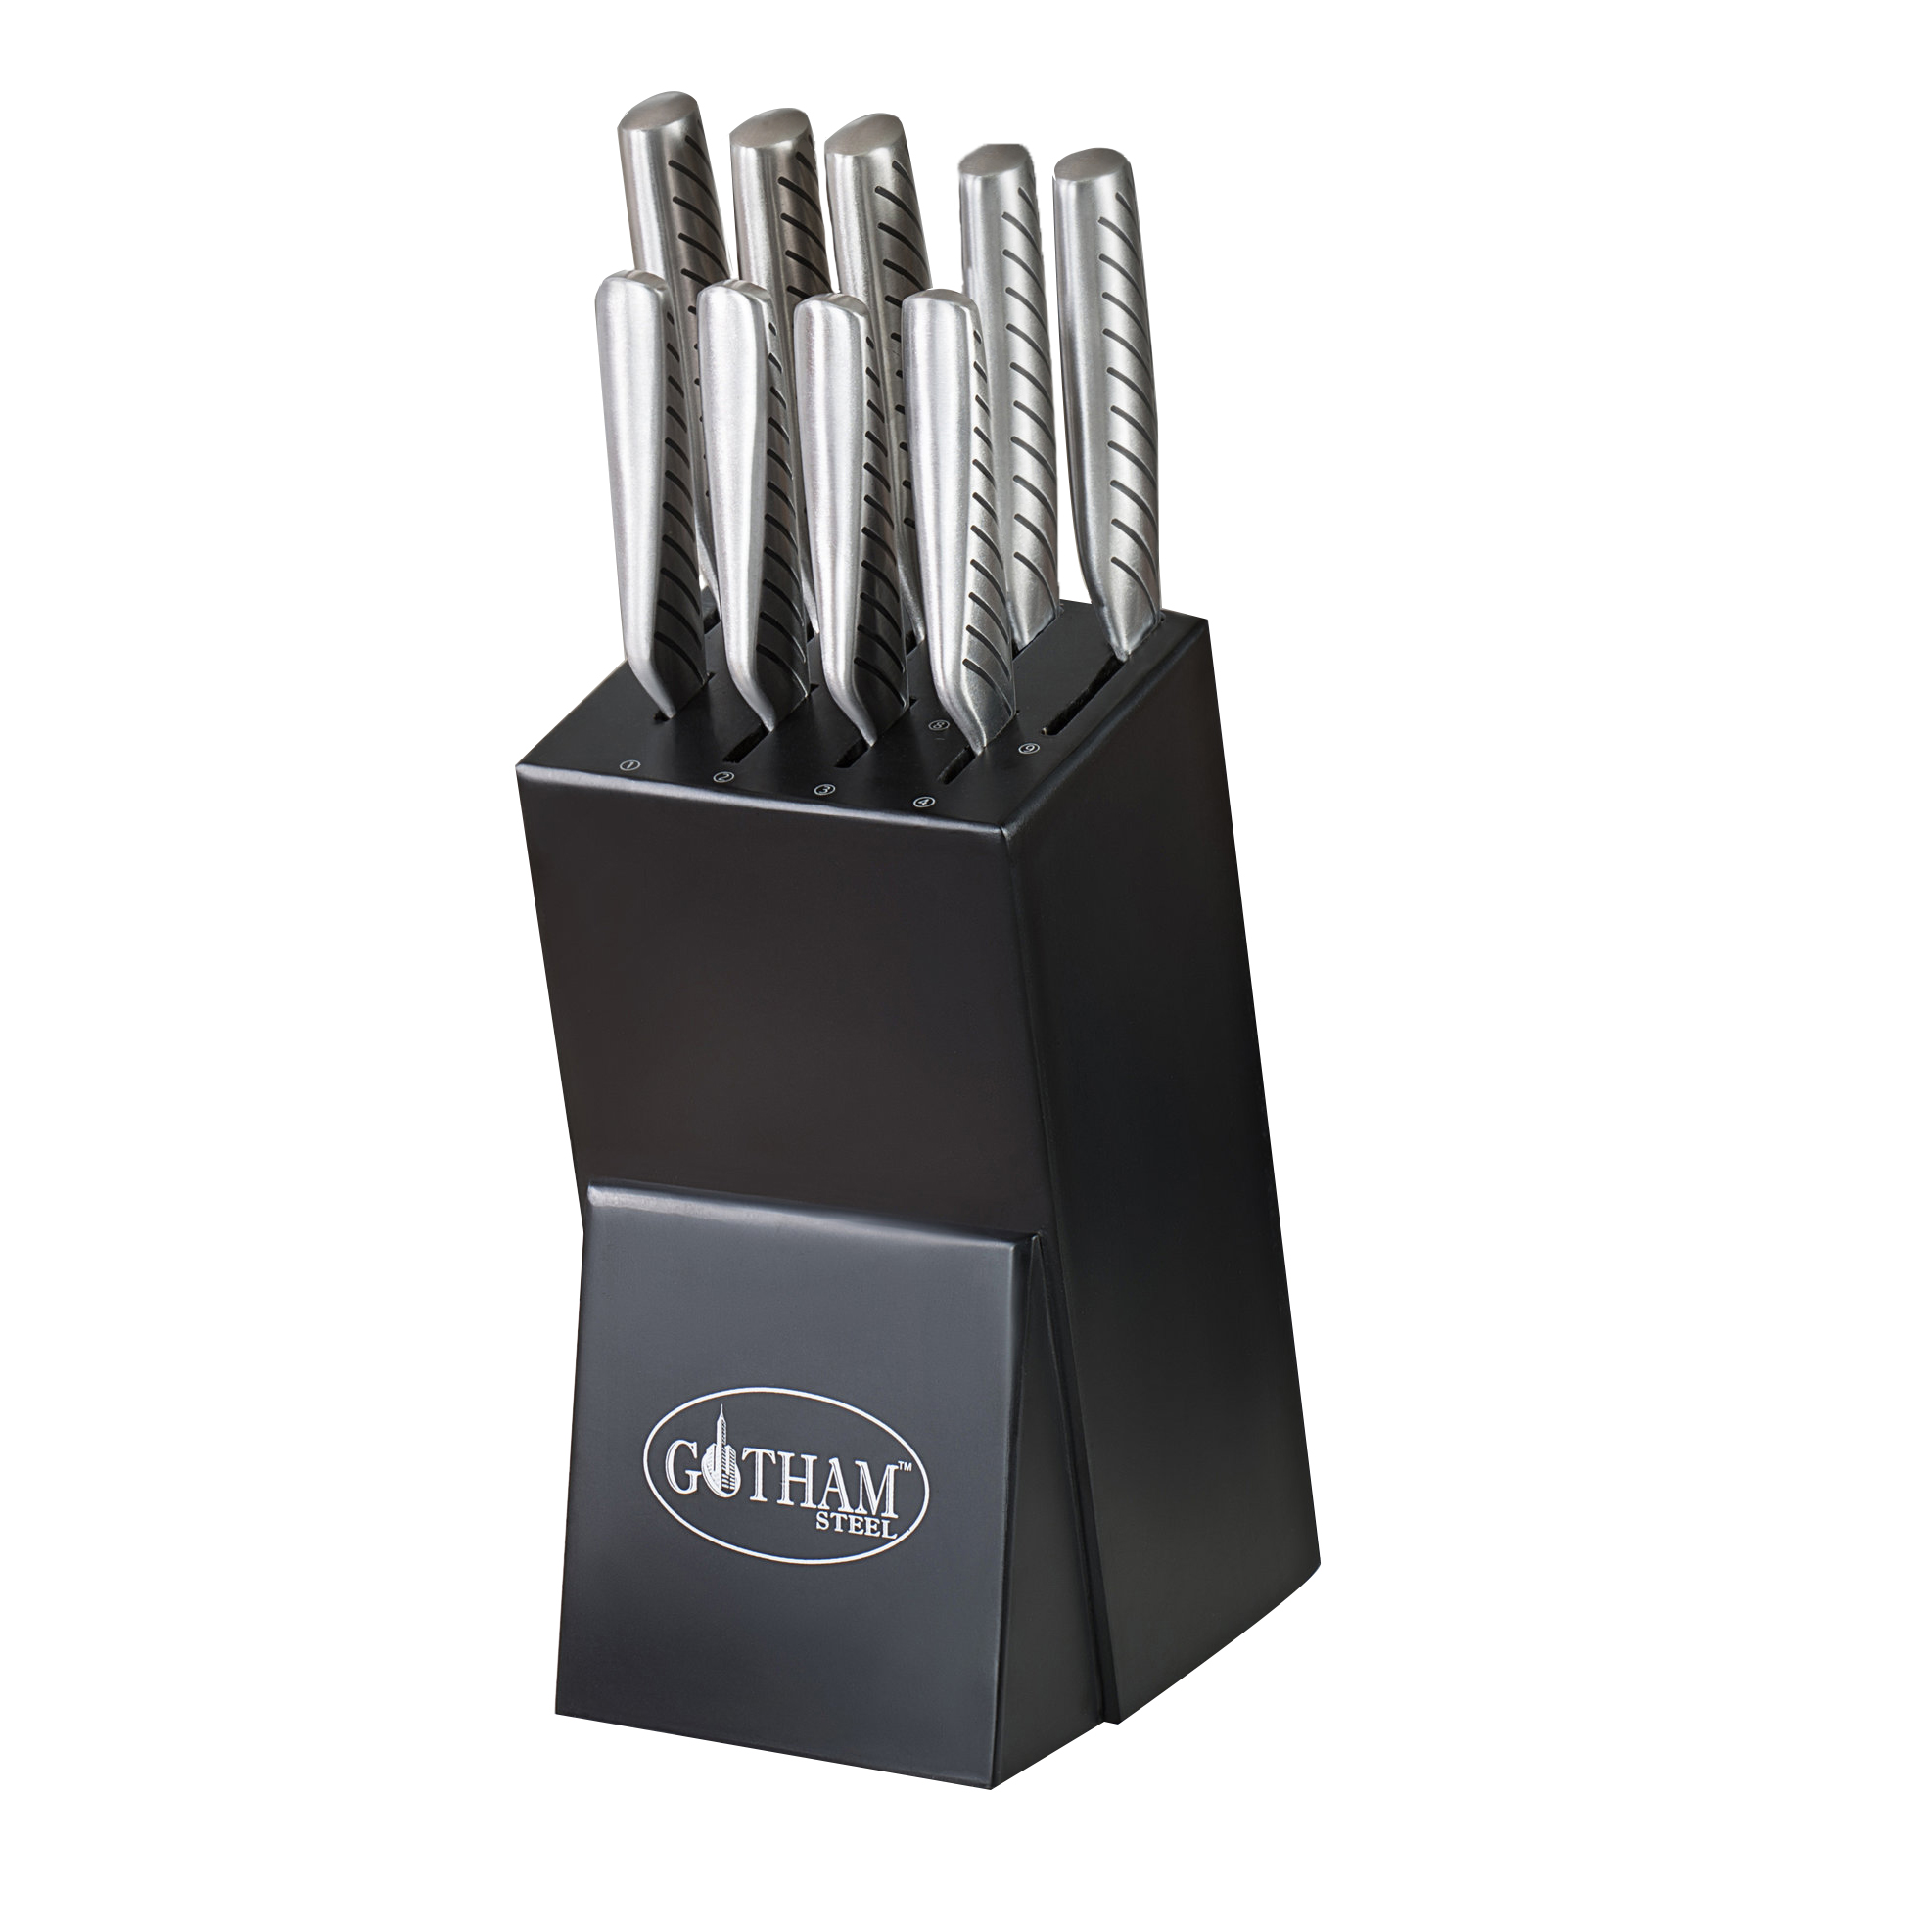 Gotham 10 PC knife set with wooden block (2) copy.jpg